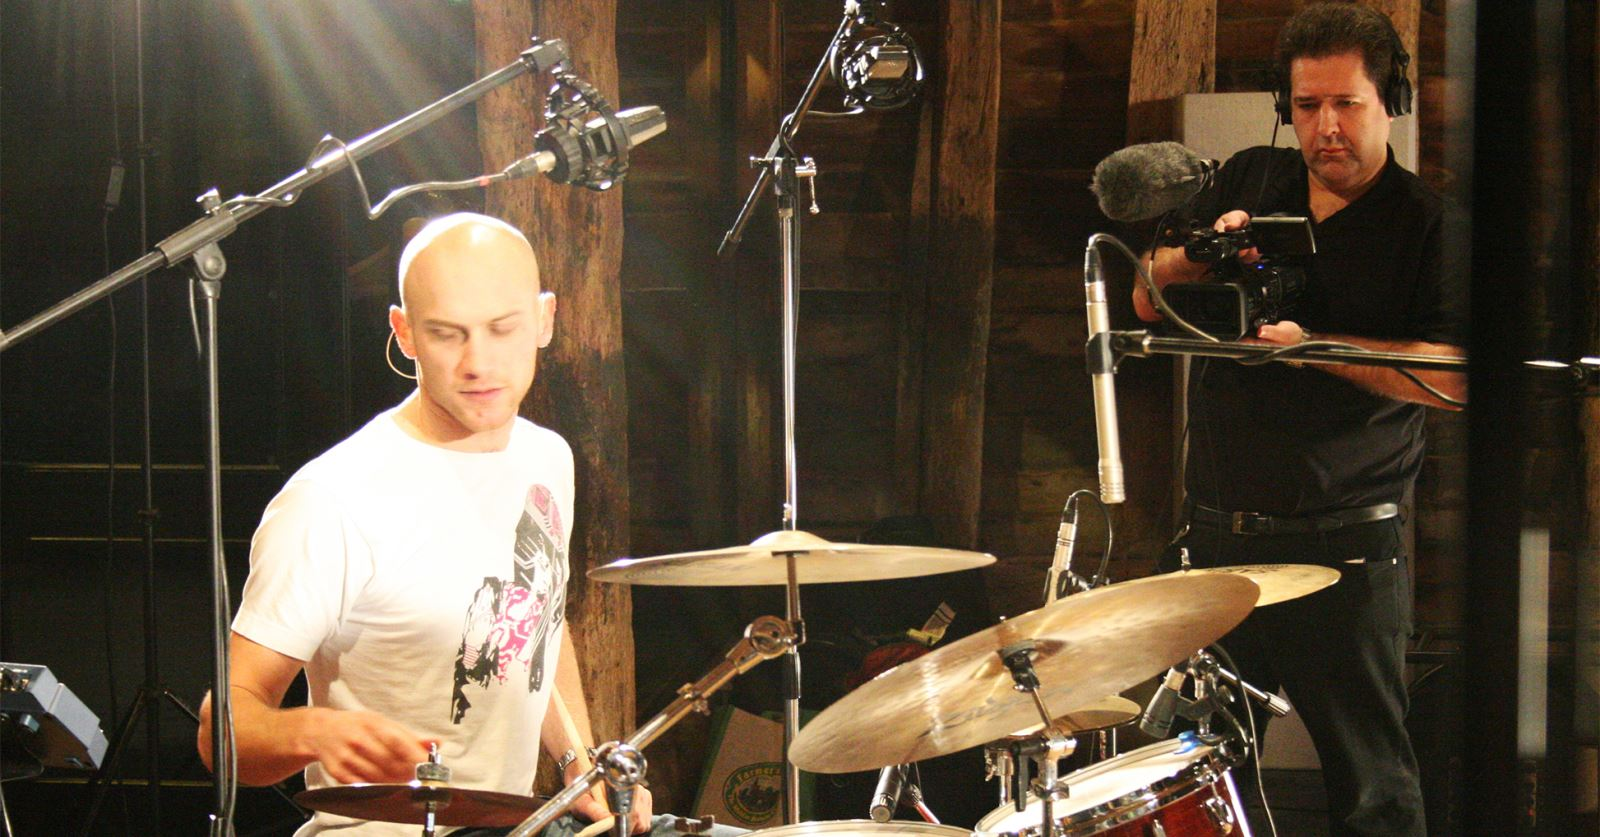 GTC member Oliver Smith filming a recording studio session for the John Randall Quintet